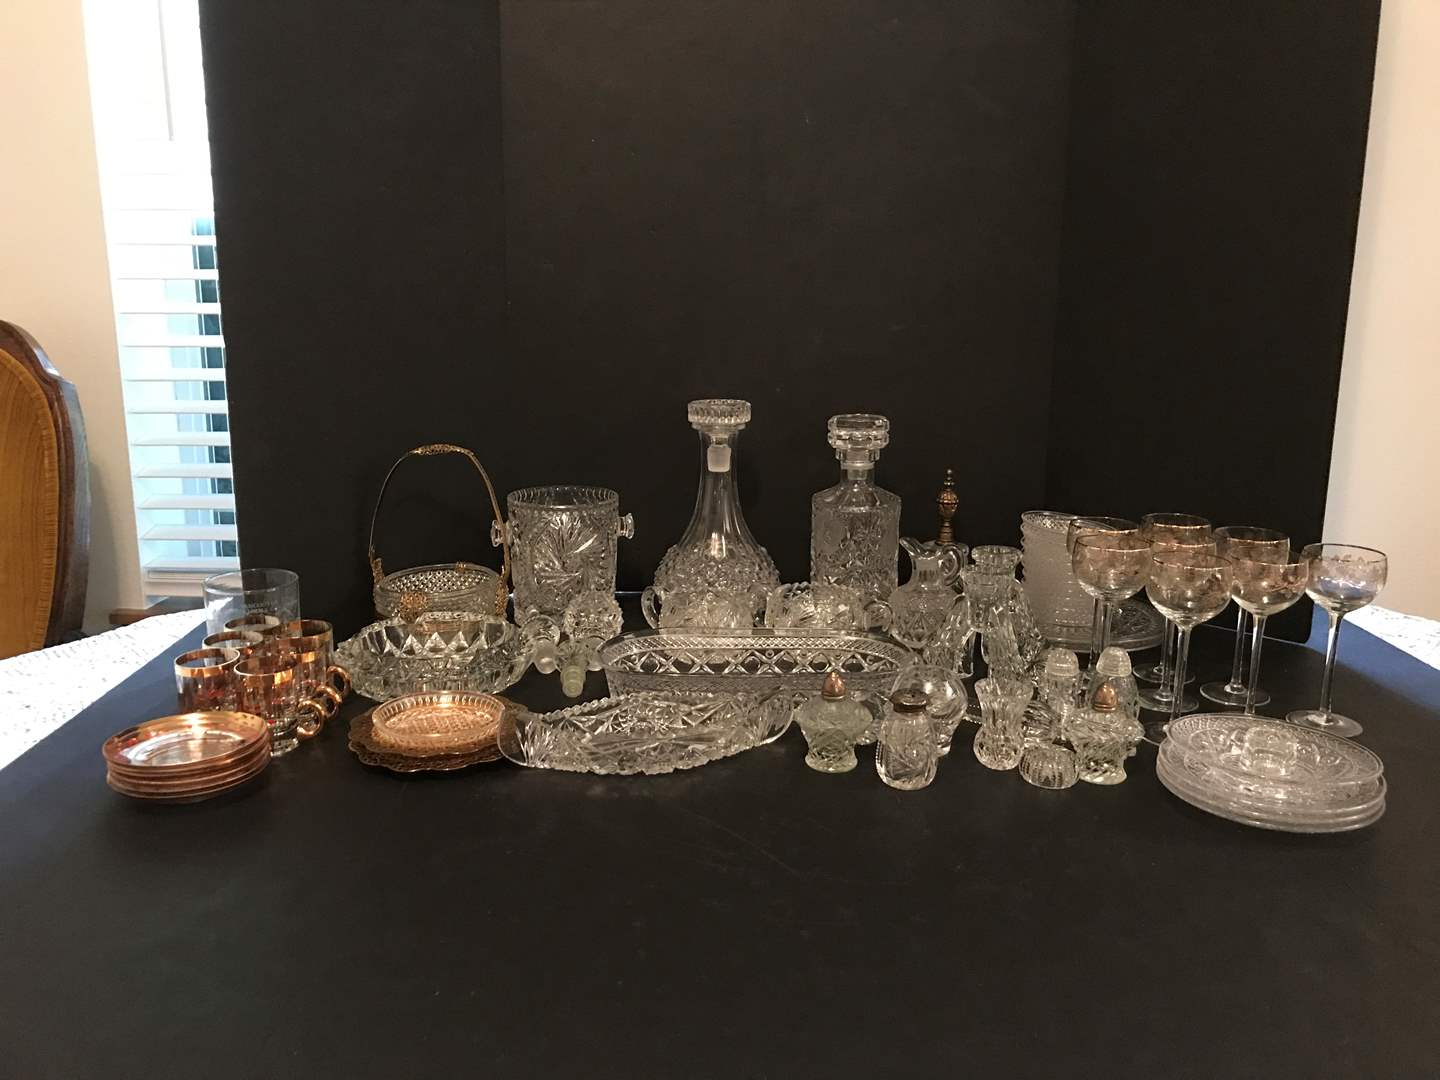 Lot # 75 - Lot Of Crystal Glass: Decanters, Stemware, Salt & Pepper Shakers, Candle Holders & More (main image)